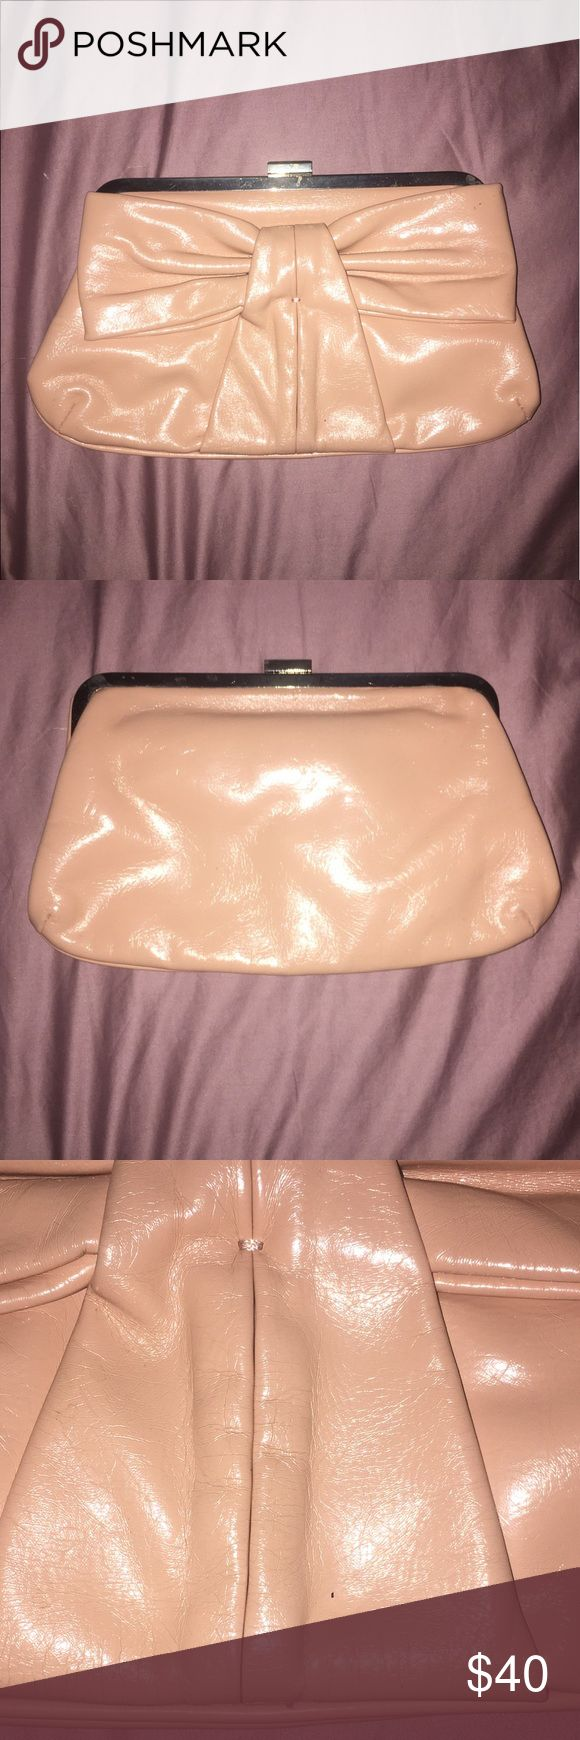 Melie Bianco beige bow clutch Used and in excellent condition. Super cute. It came with a chain but I removed and and no longer have it. There are 2 hooks that you can clip a chain or strap to if you want (shown in pic). One tiny spot that is barely noticeable (shown in pic) Melie Bianco Bags Clutches & Wristlets